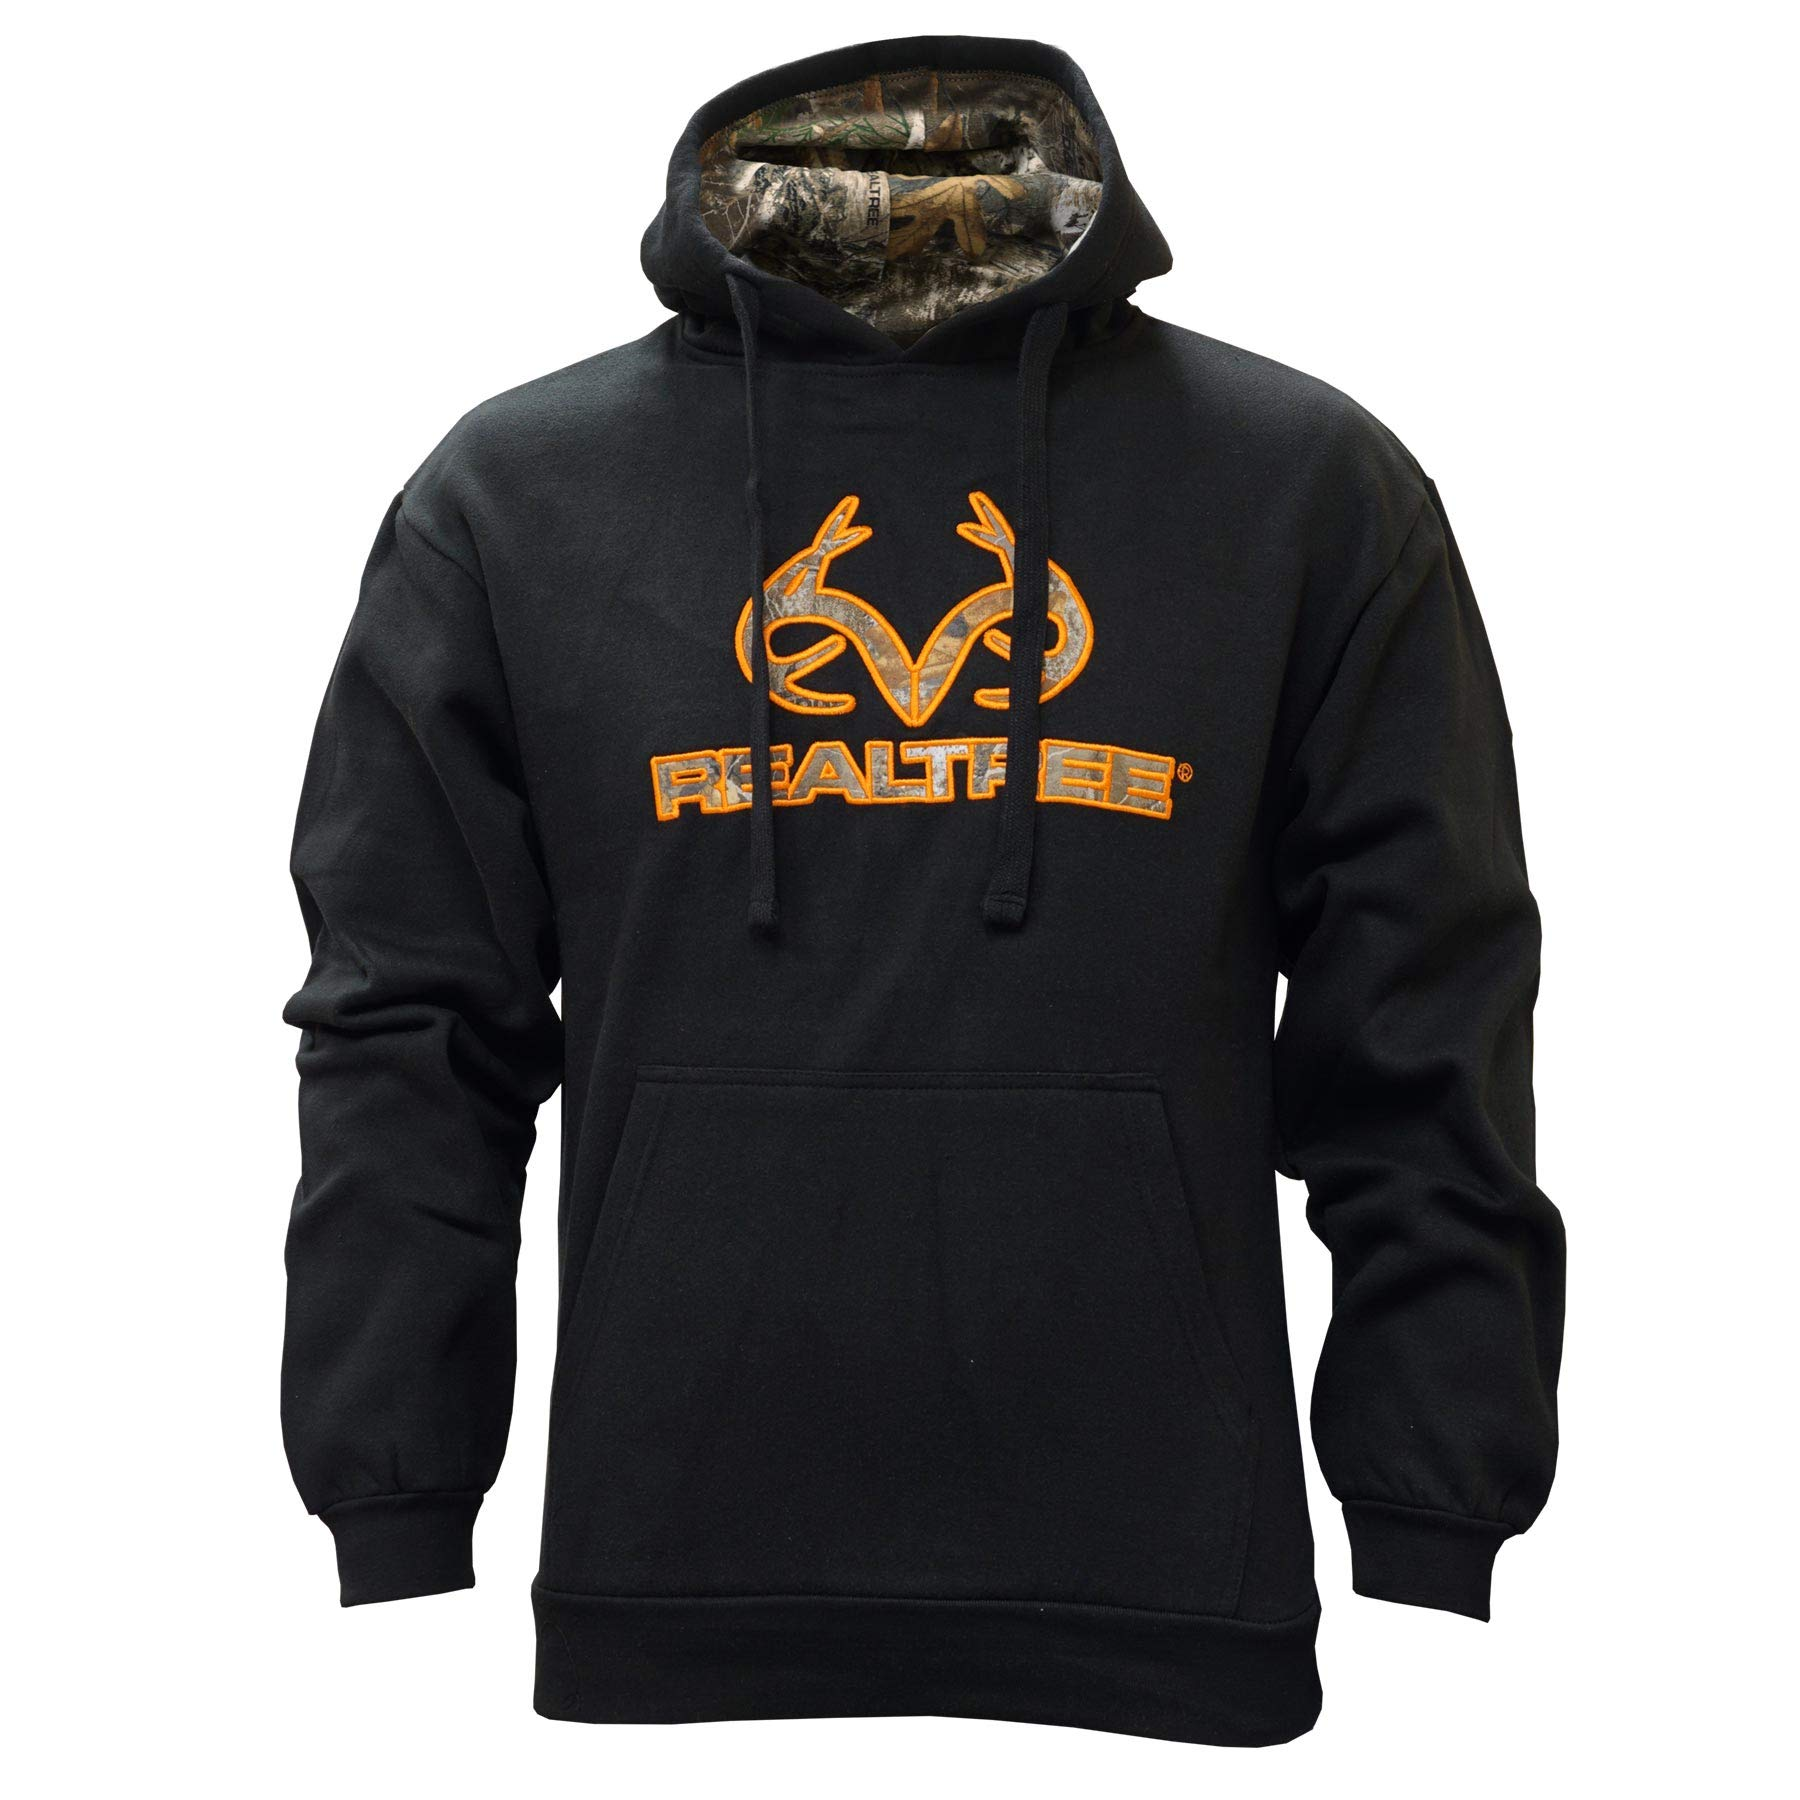 Staghorn Realtree Men's Fleece Applique Hoodie, Black, Large